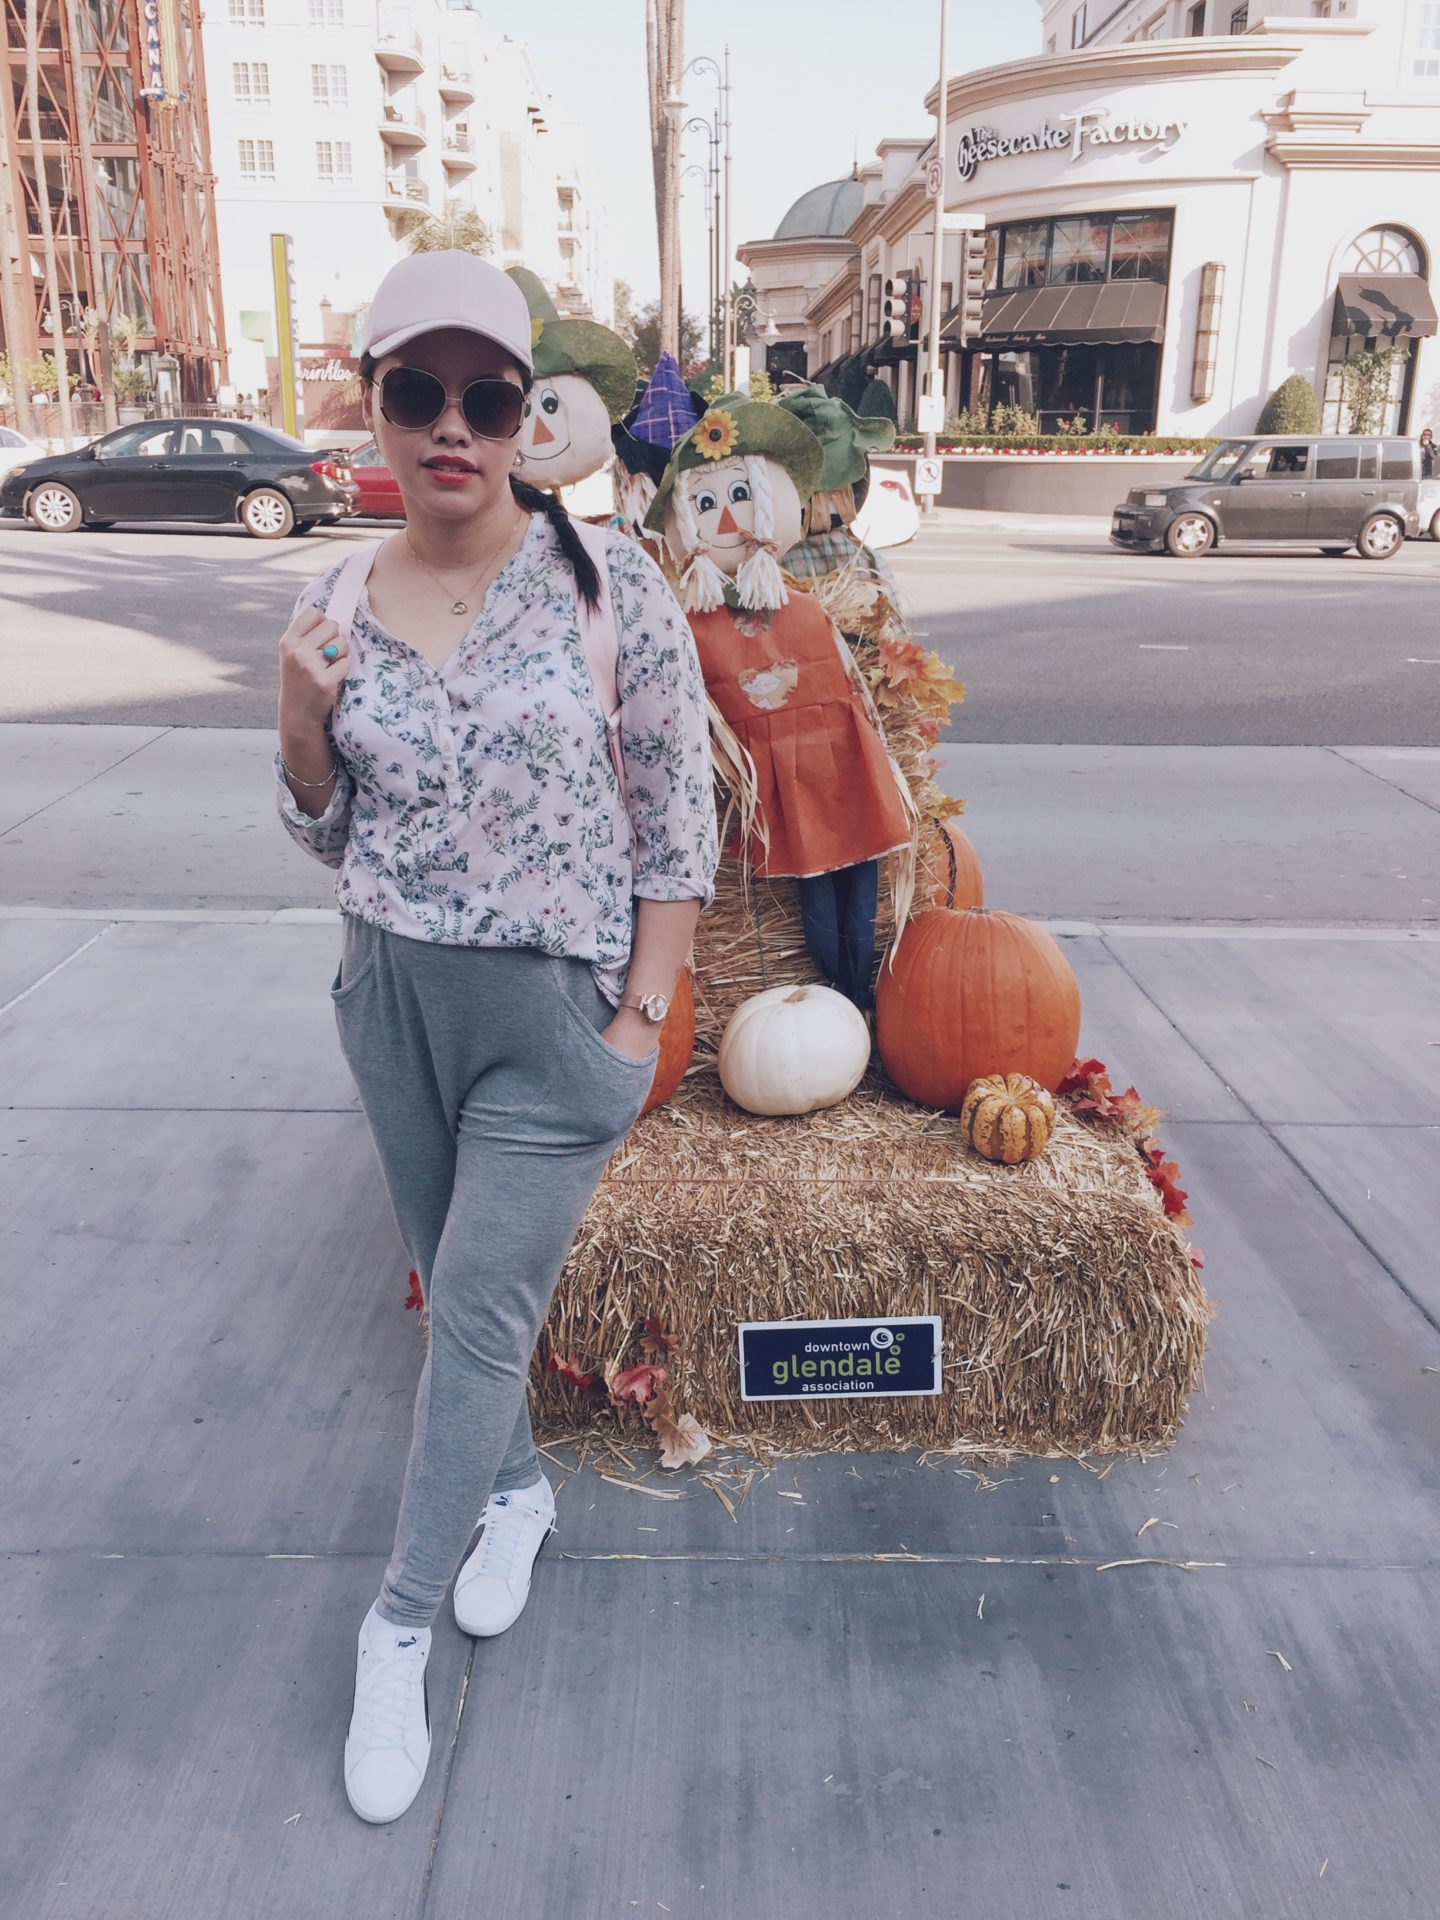 Cheesecake Factory, Downtown Glendale, California, Instagram: @pslilyboutique, Pinterest, Los Angeles fashion blogger, top fashion blog, best fashion blog, fashion & personal style blog, travel blog, travel blogger, LA fashion blogger, Fall 2018 Decor, Fall & Winter 2018 Outfit Ideas, Pumpkins, Glendale Galleria Mall, What is my style, Travel Outfit Ideas 2018, Puma Backpack